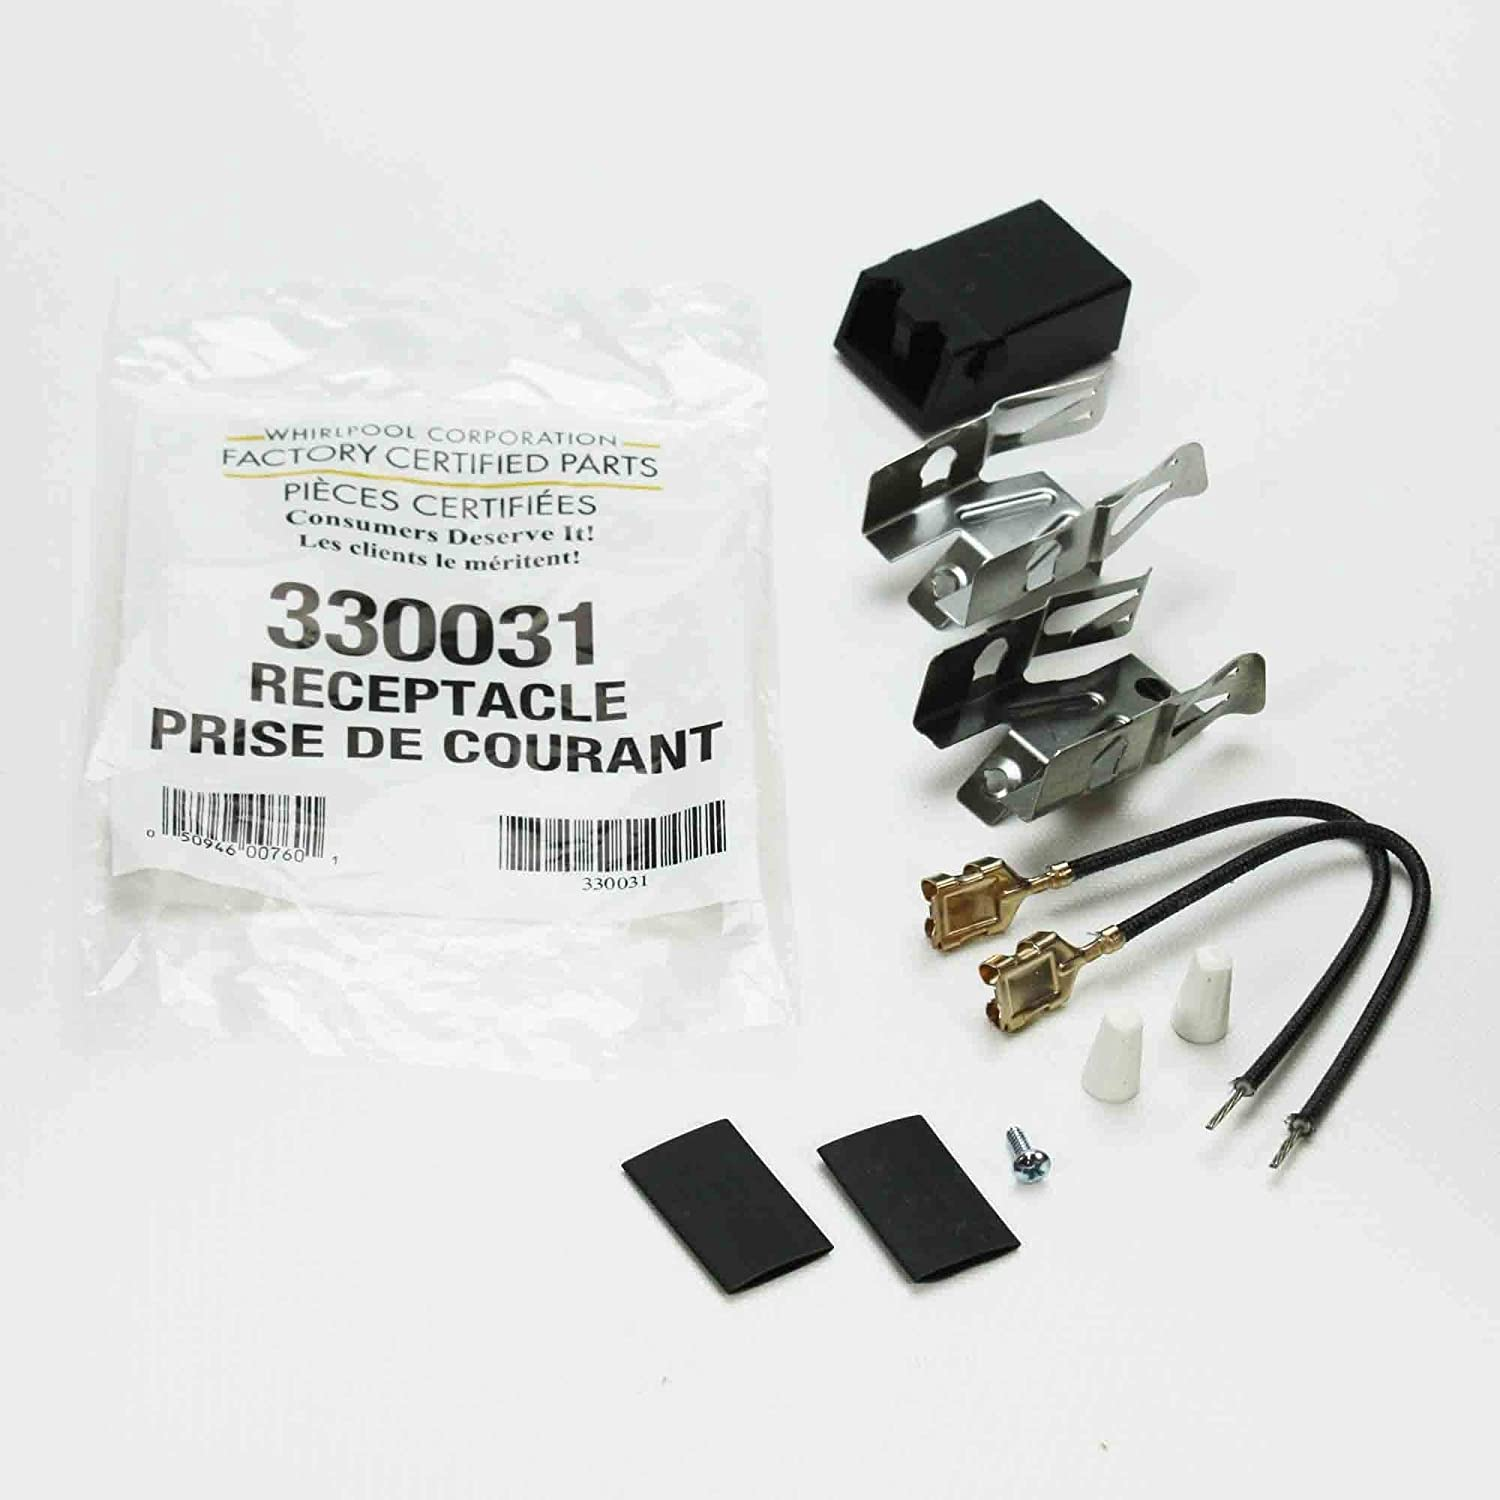 RR117 - Supco Aftermarket Replacement Stove Heating Element/Surface Burner Receptacle Kit